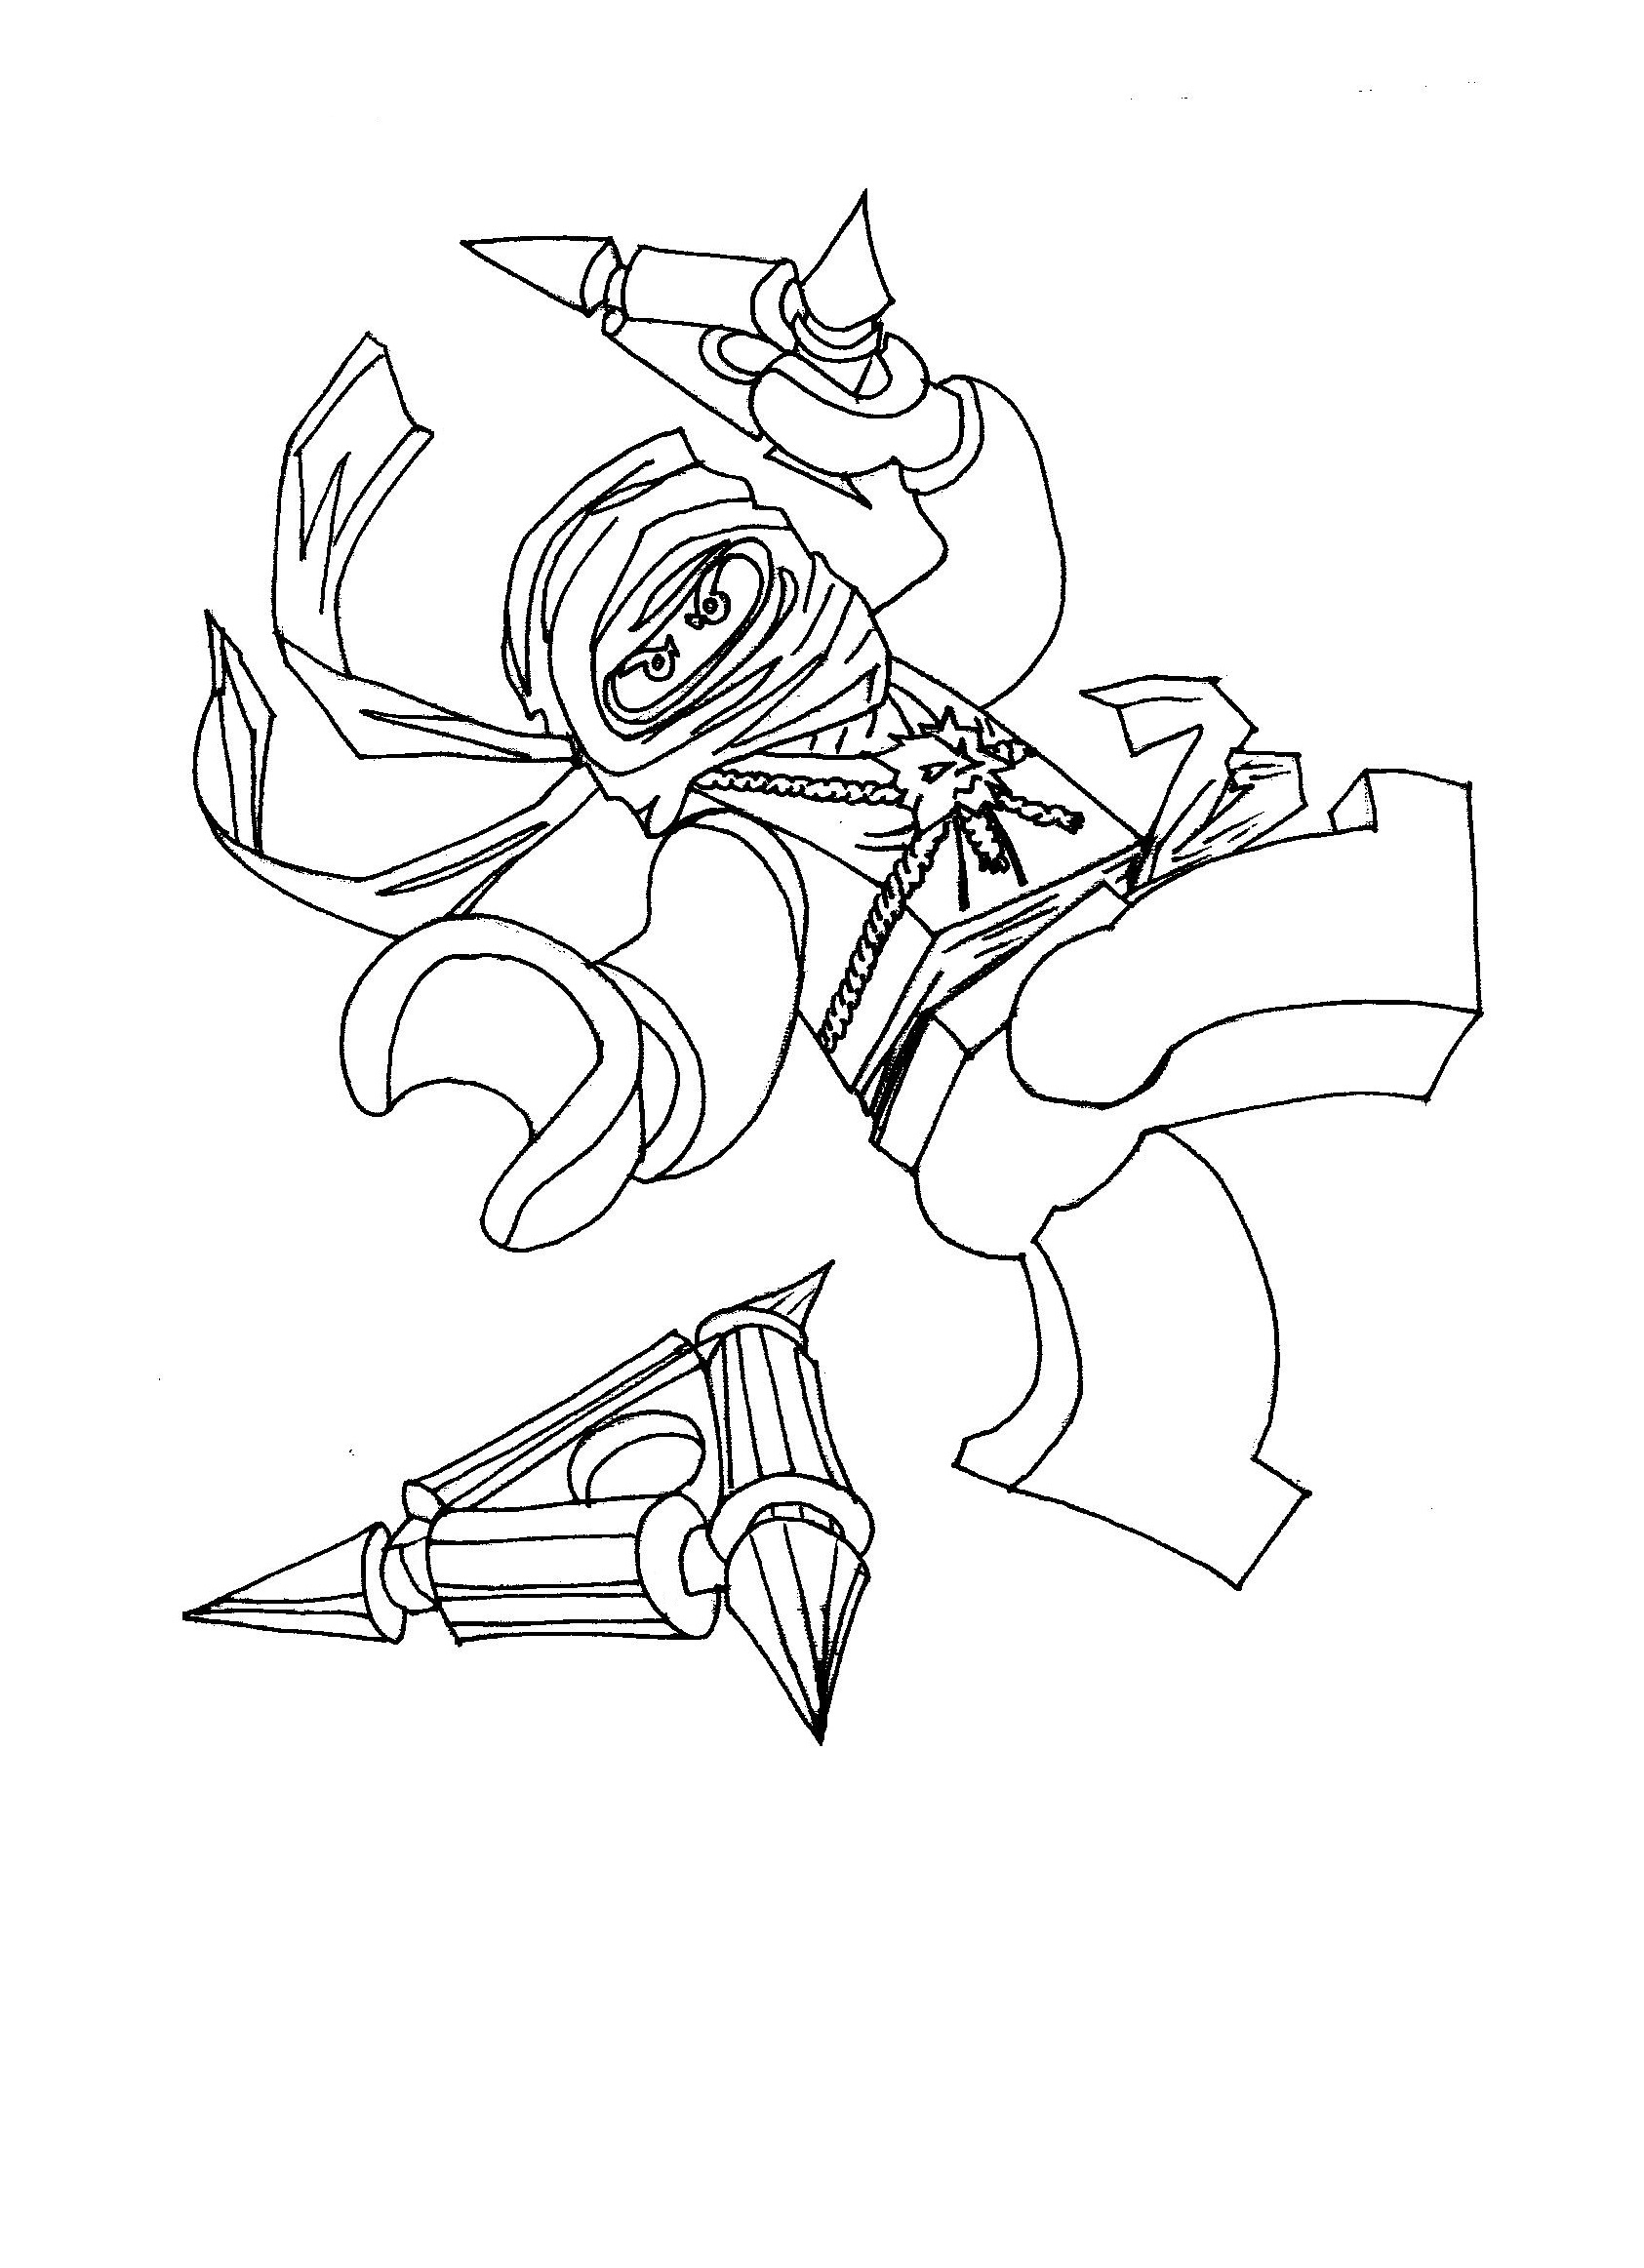 Lego Ninjago Characters Coloring Pages